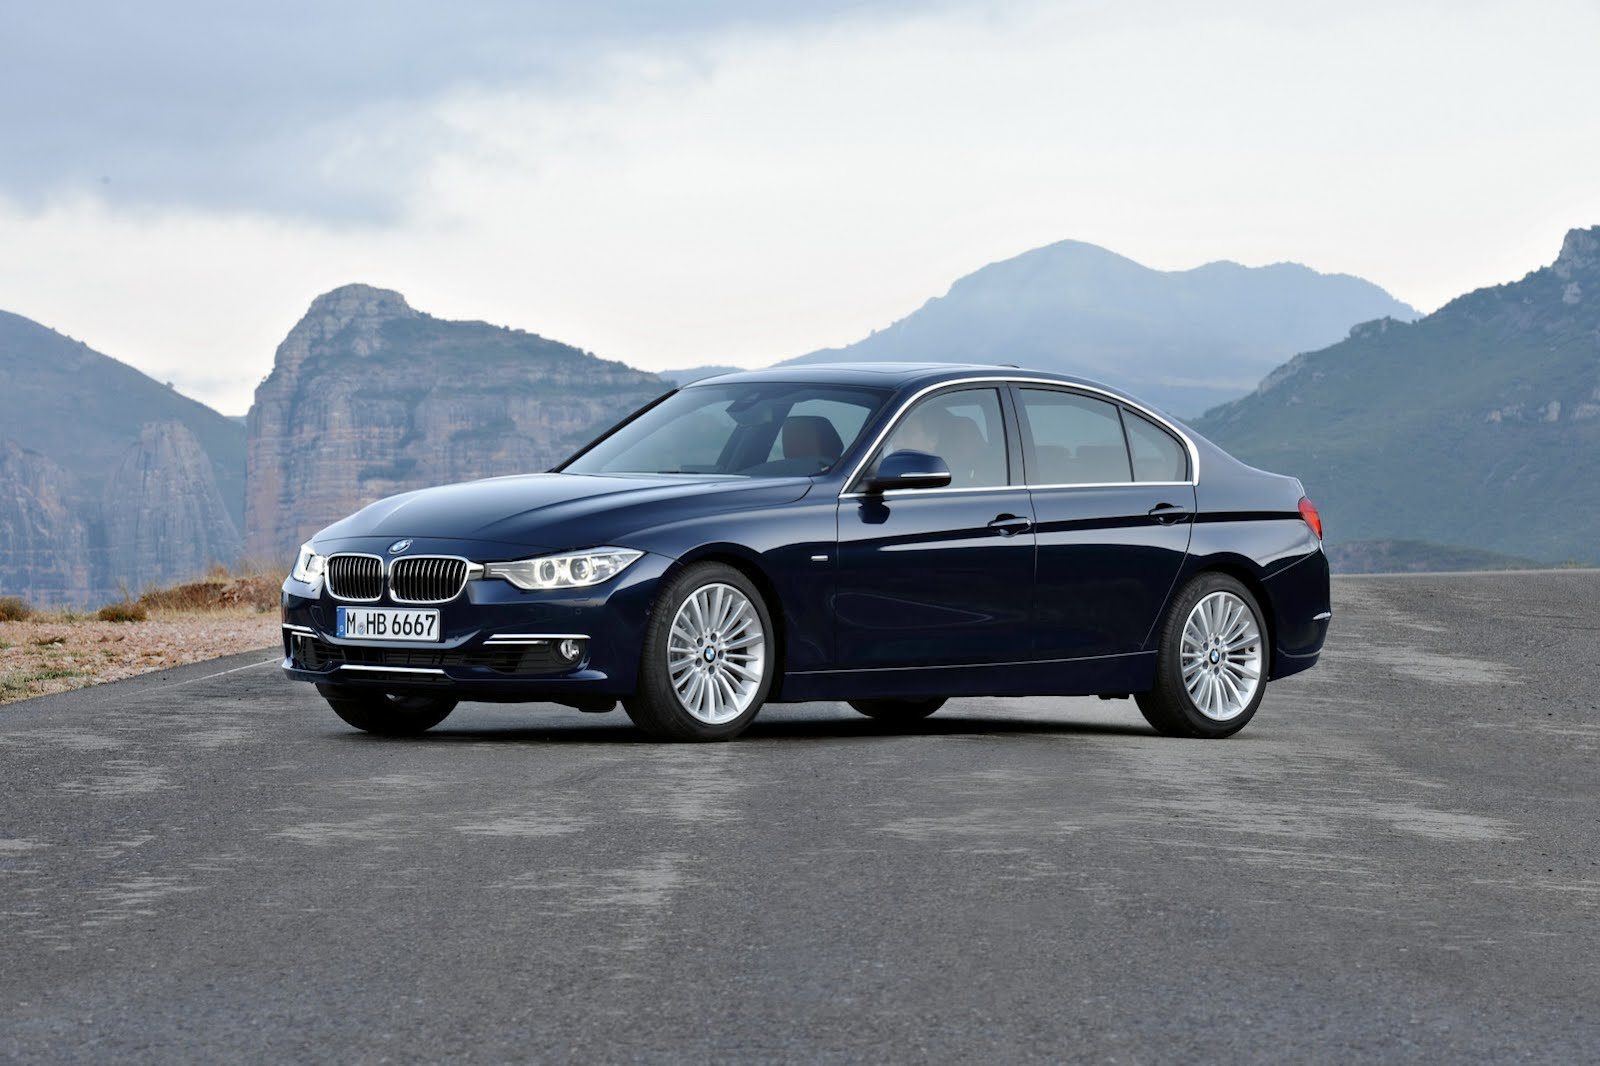 BMW 3 series 320i 2012 photo - 8